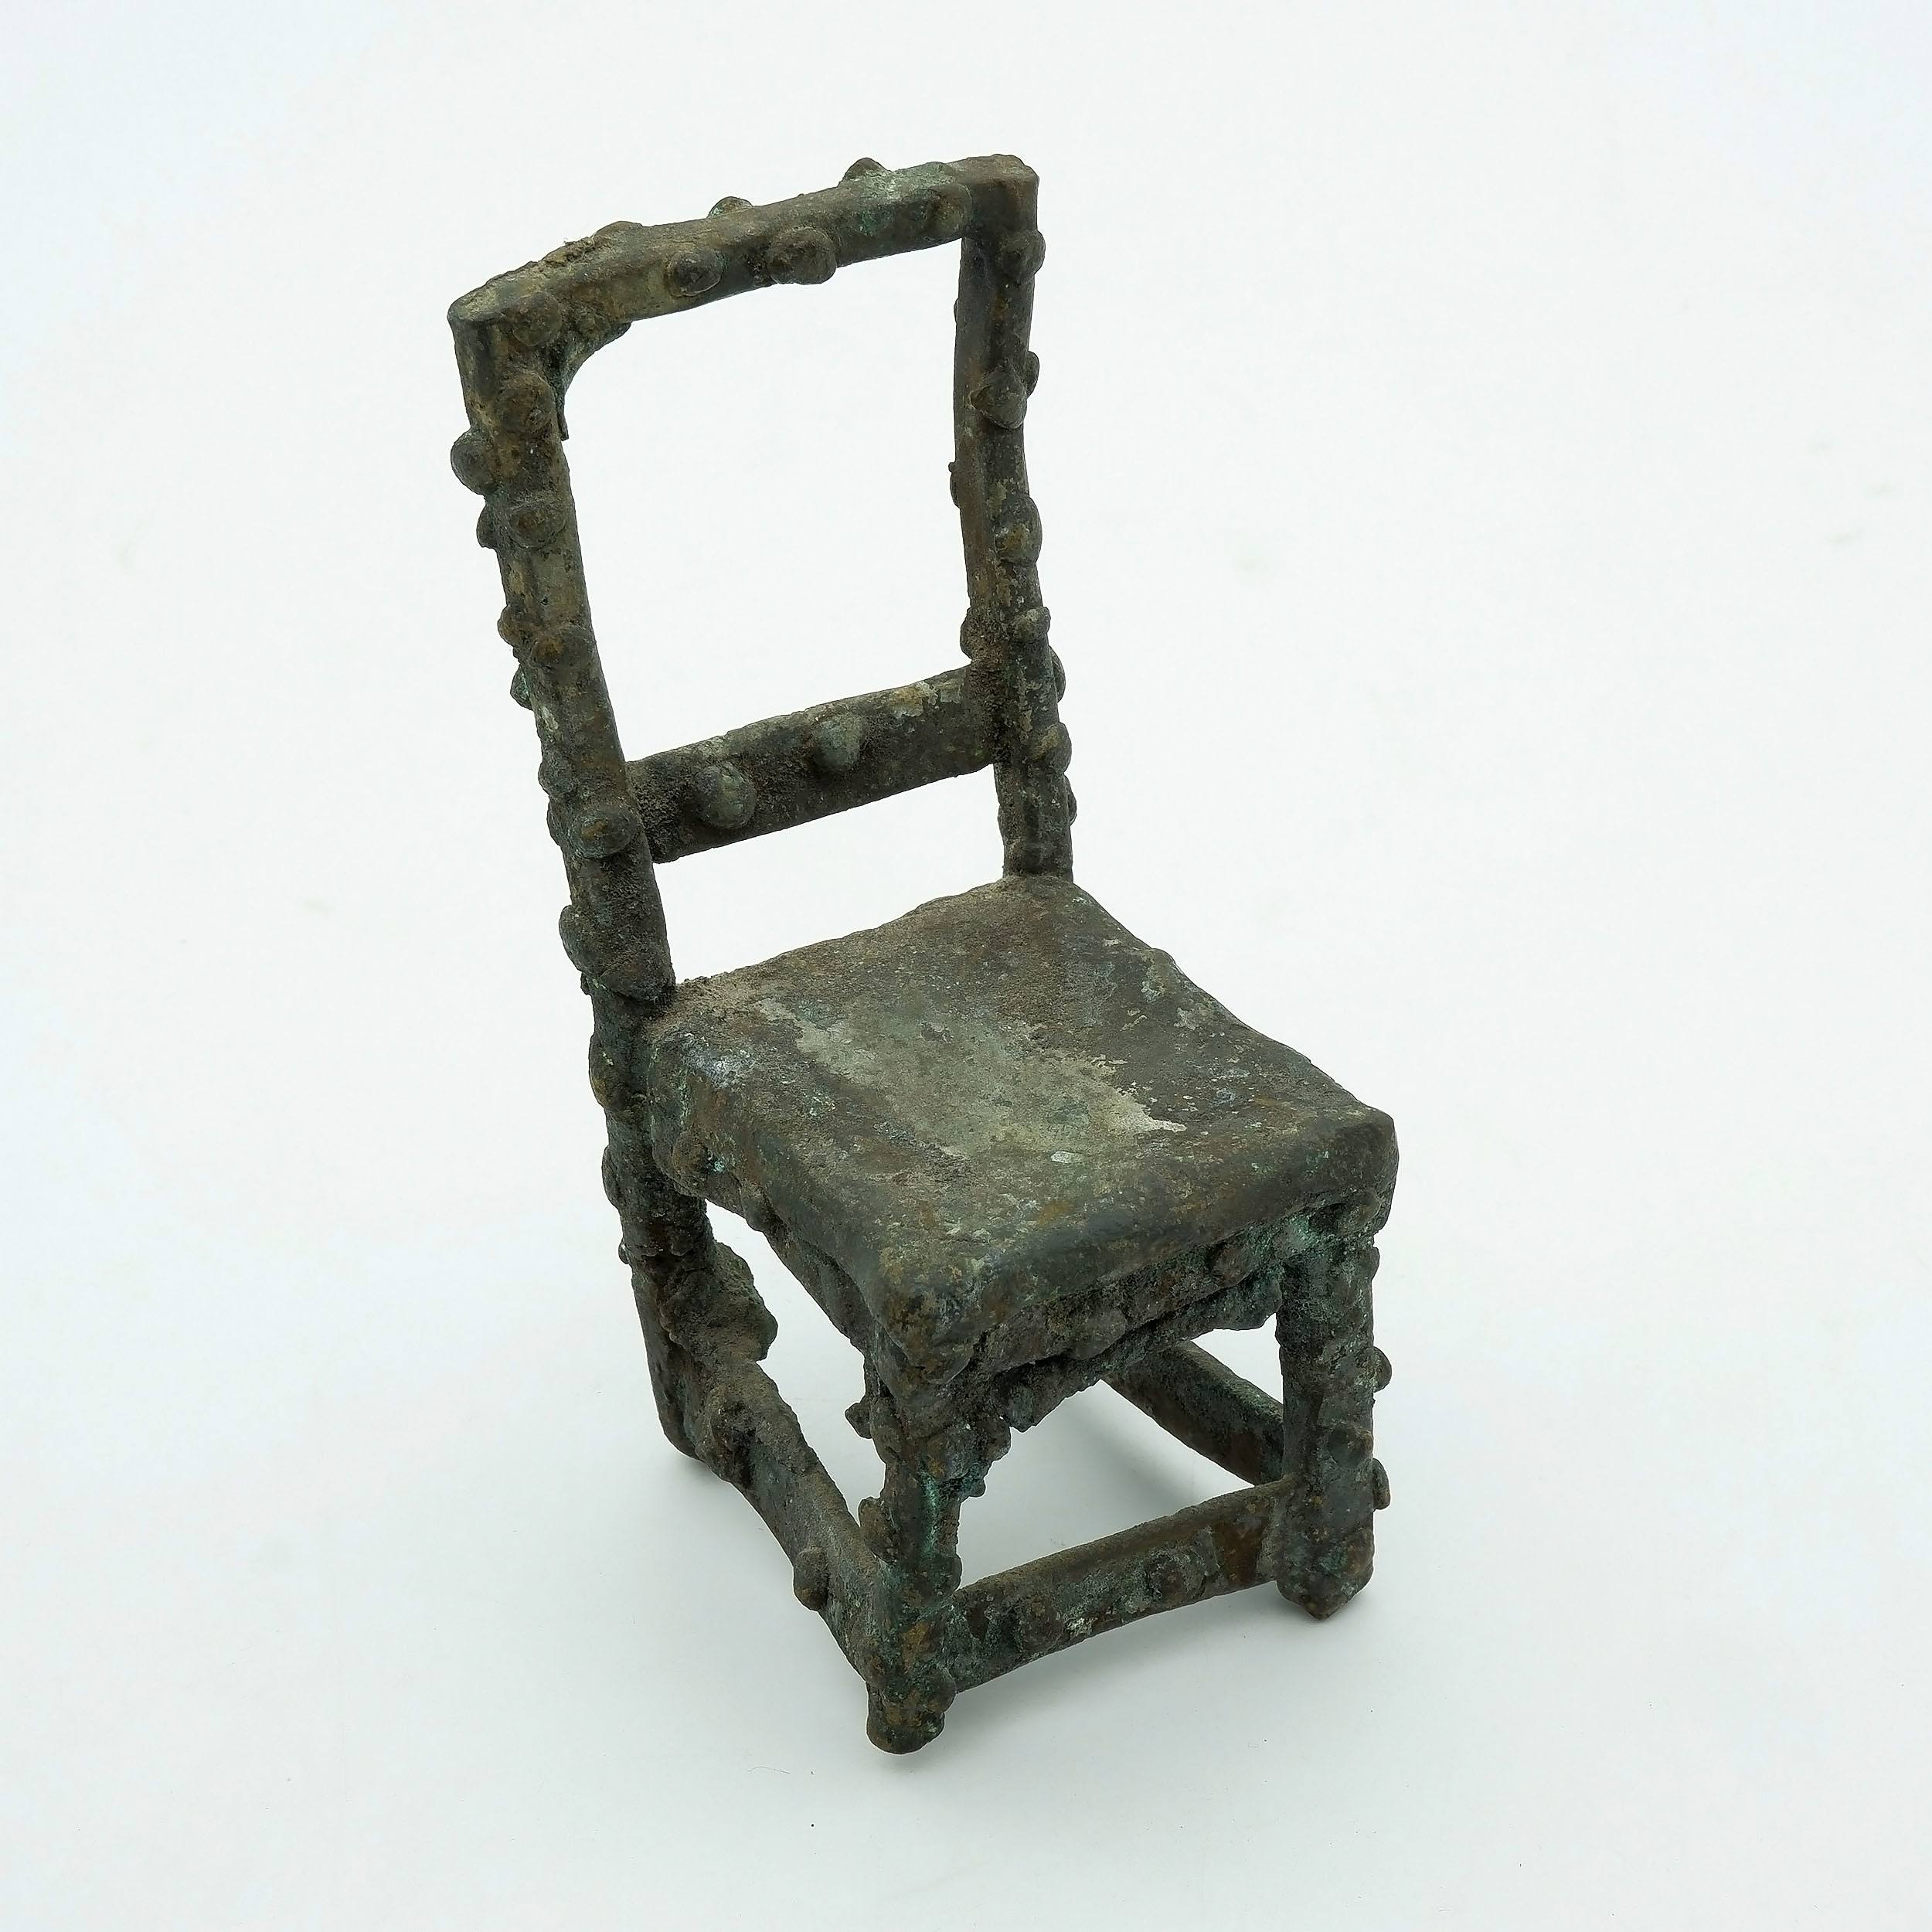 'West African Iron Model of a Chair'